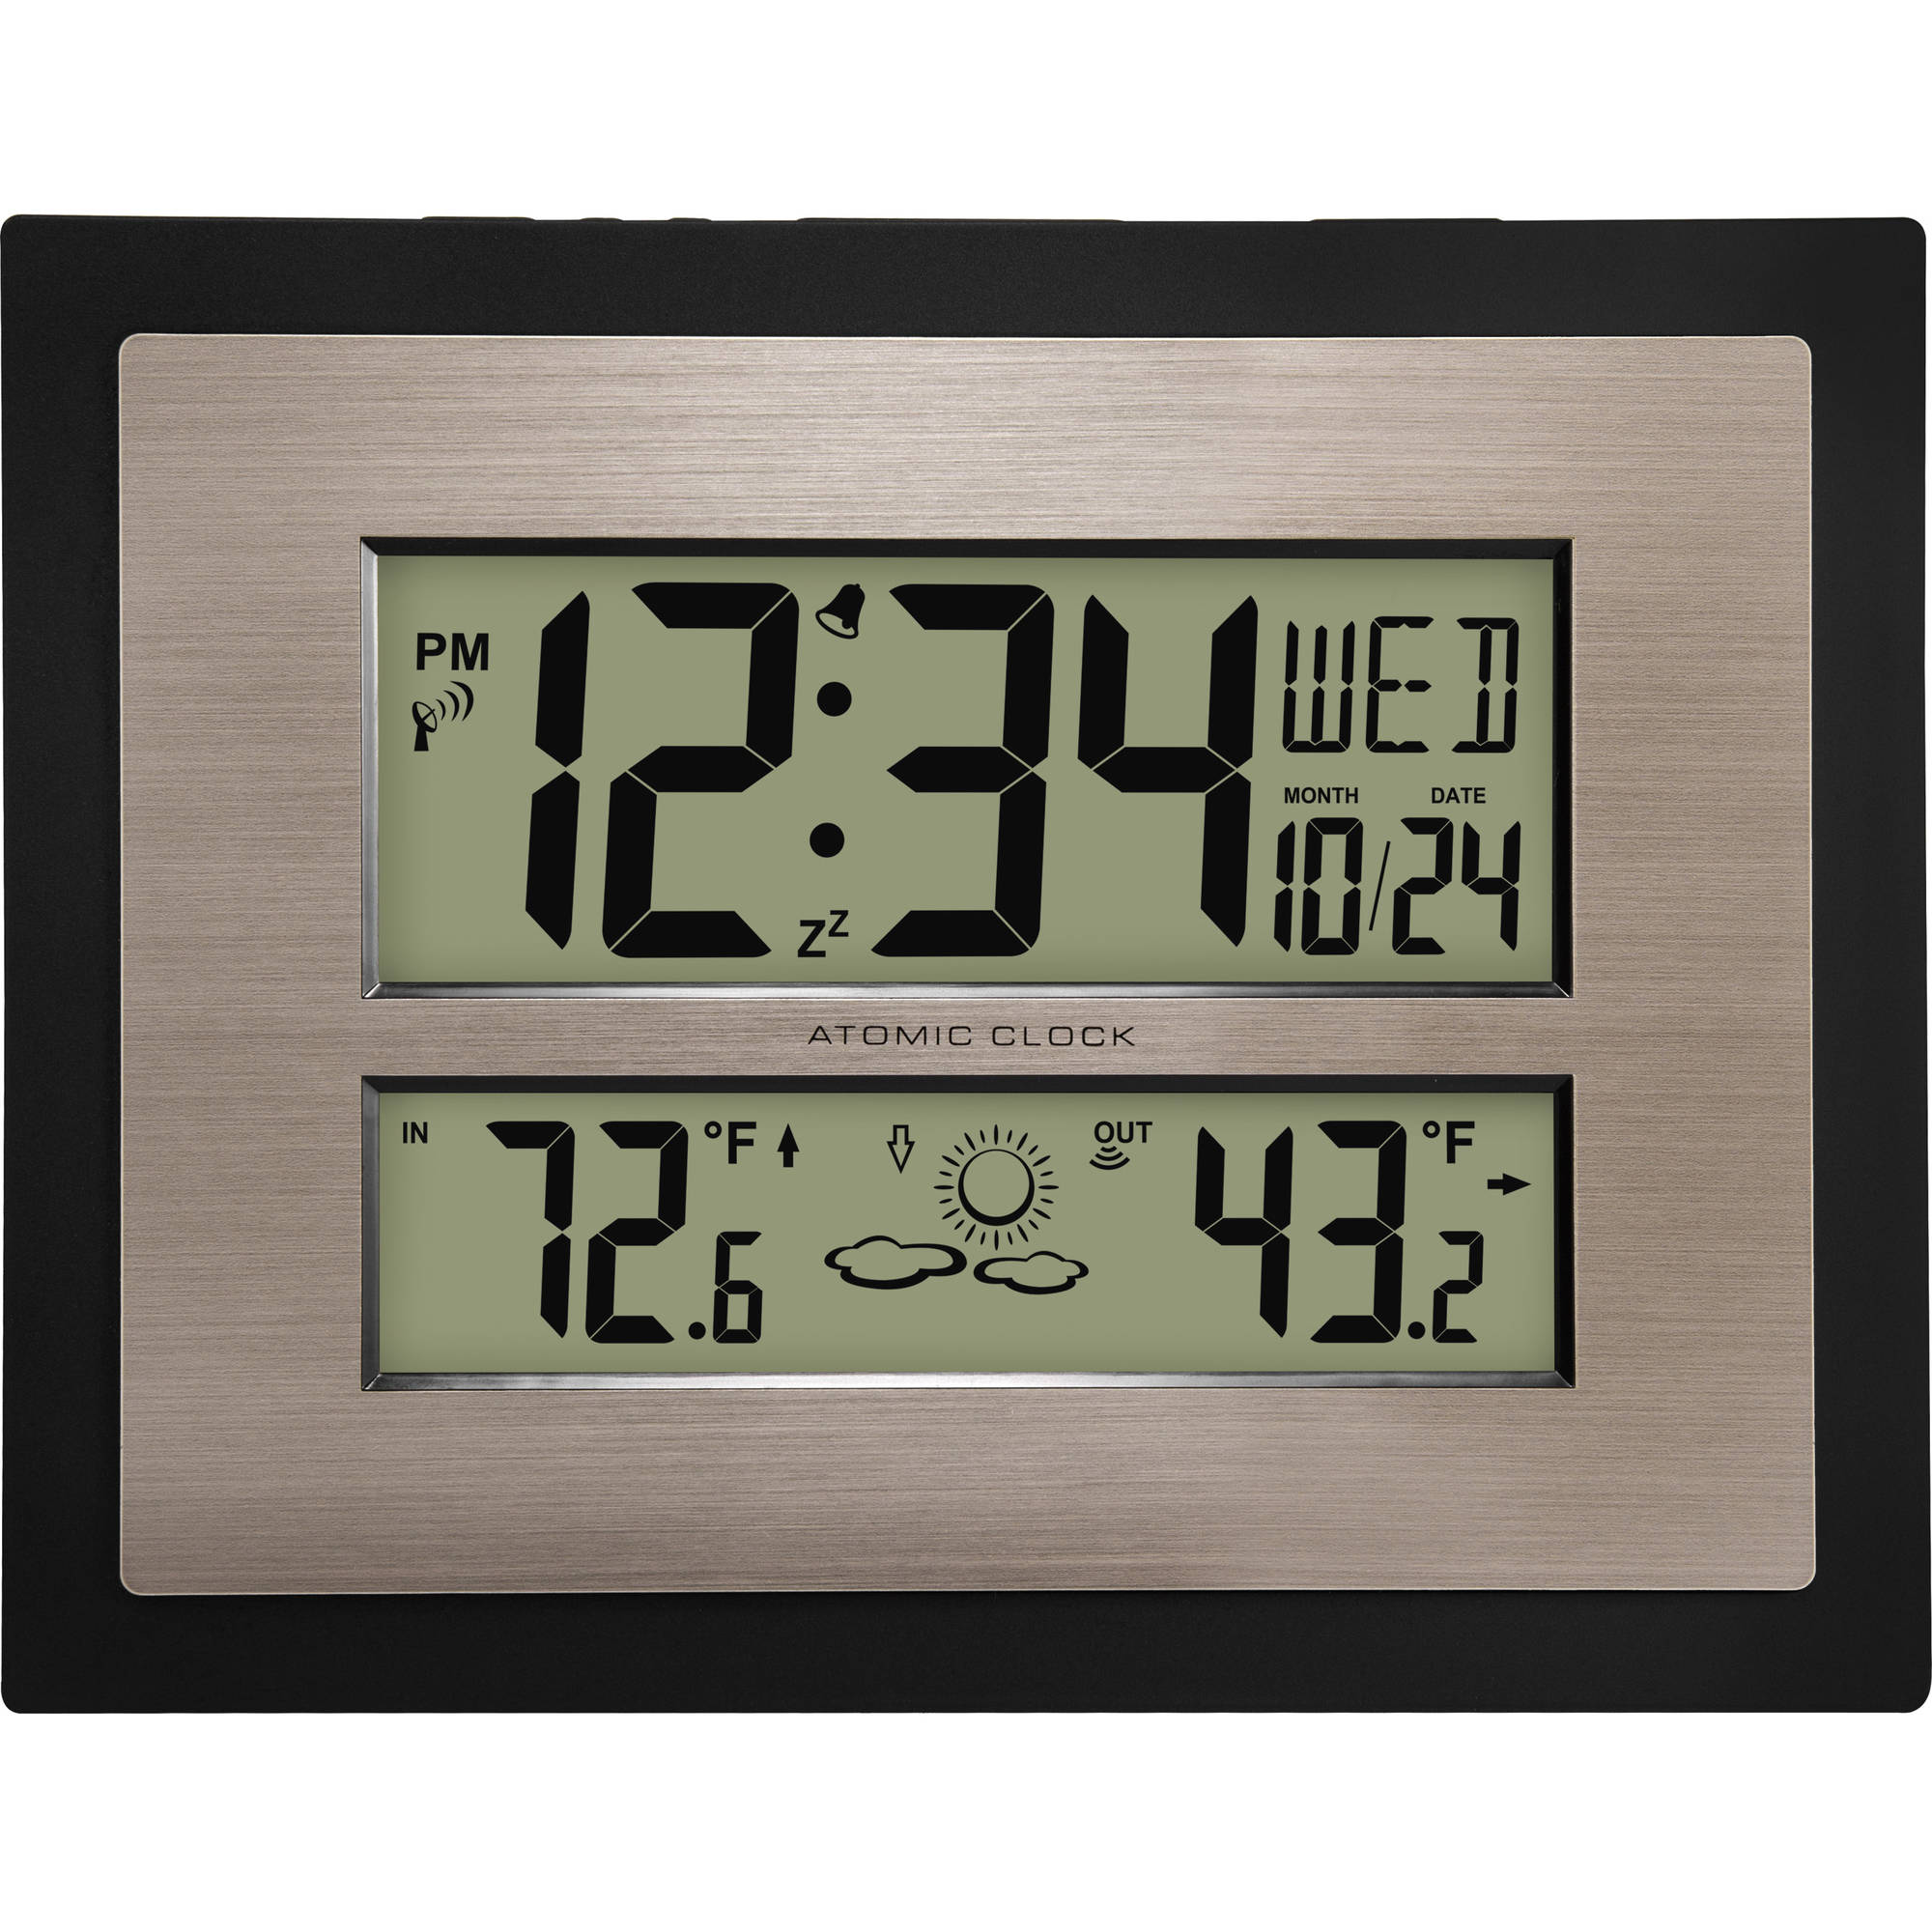 Better Homes And Gardens Atomic Digital Wall Clock With Forecast, Black